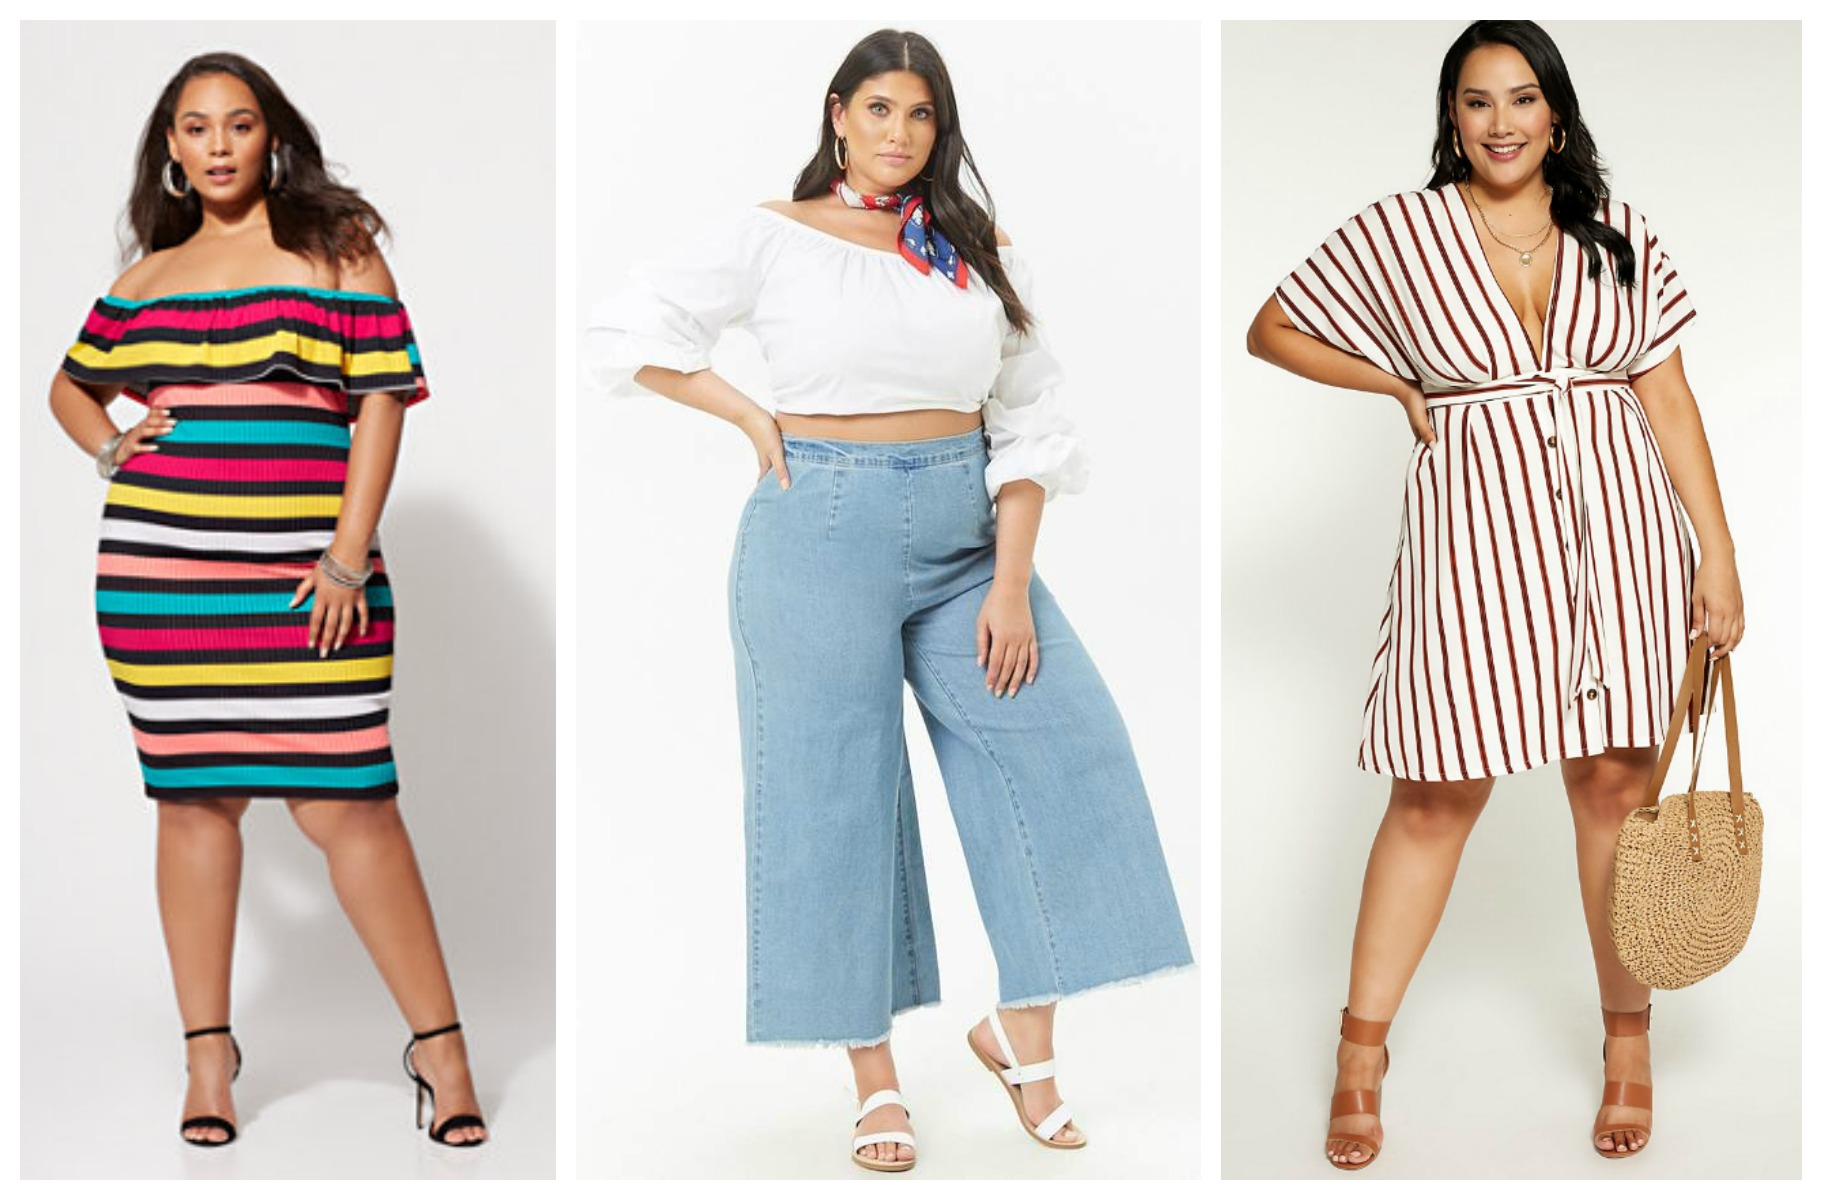 d3f02b0a24f July is still going strong with some amazing steals and deals from some of  your favorite plus size brands. Eloquii ...